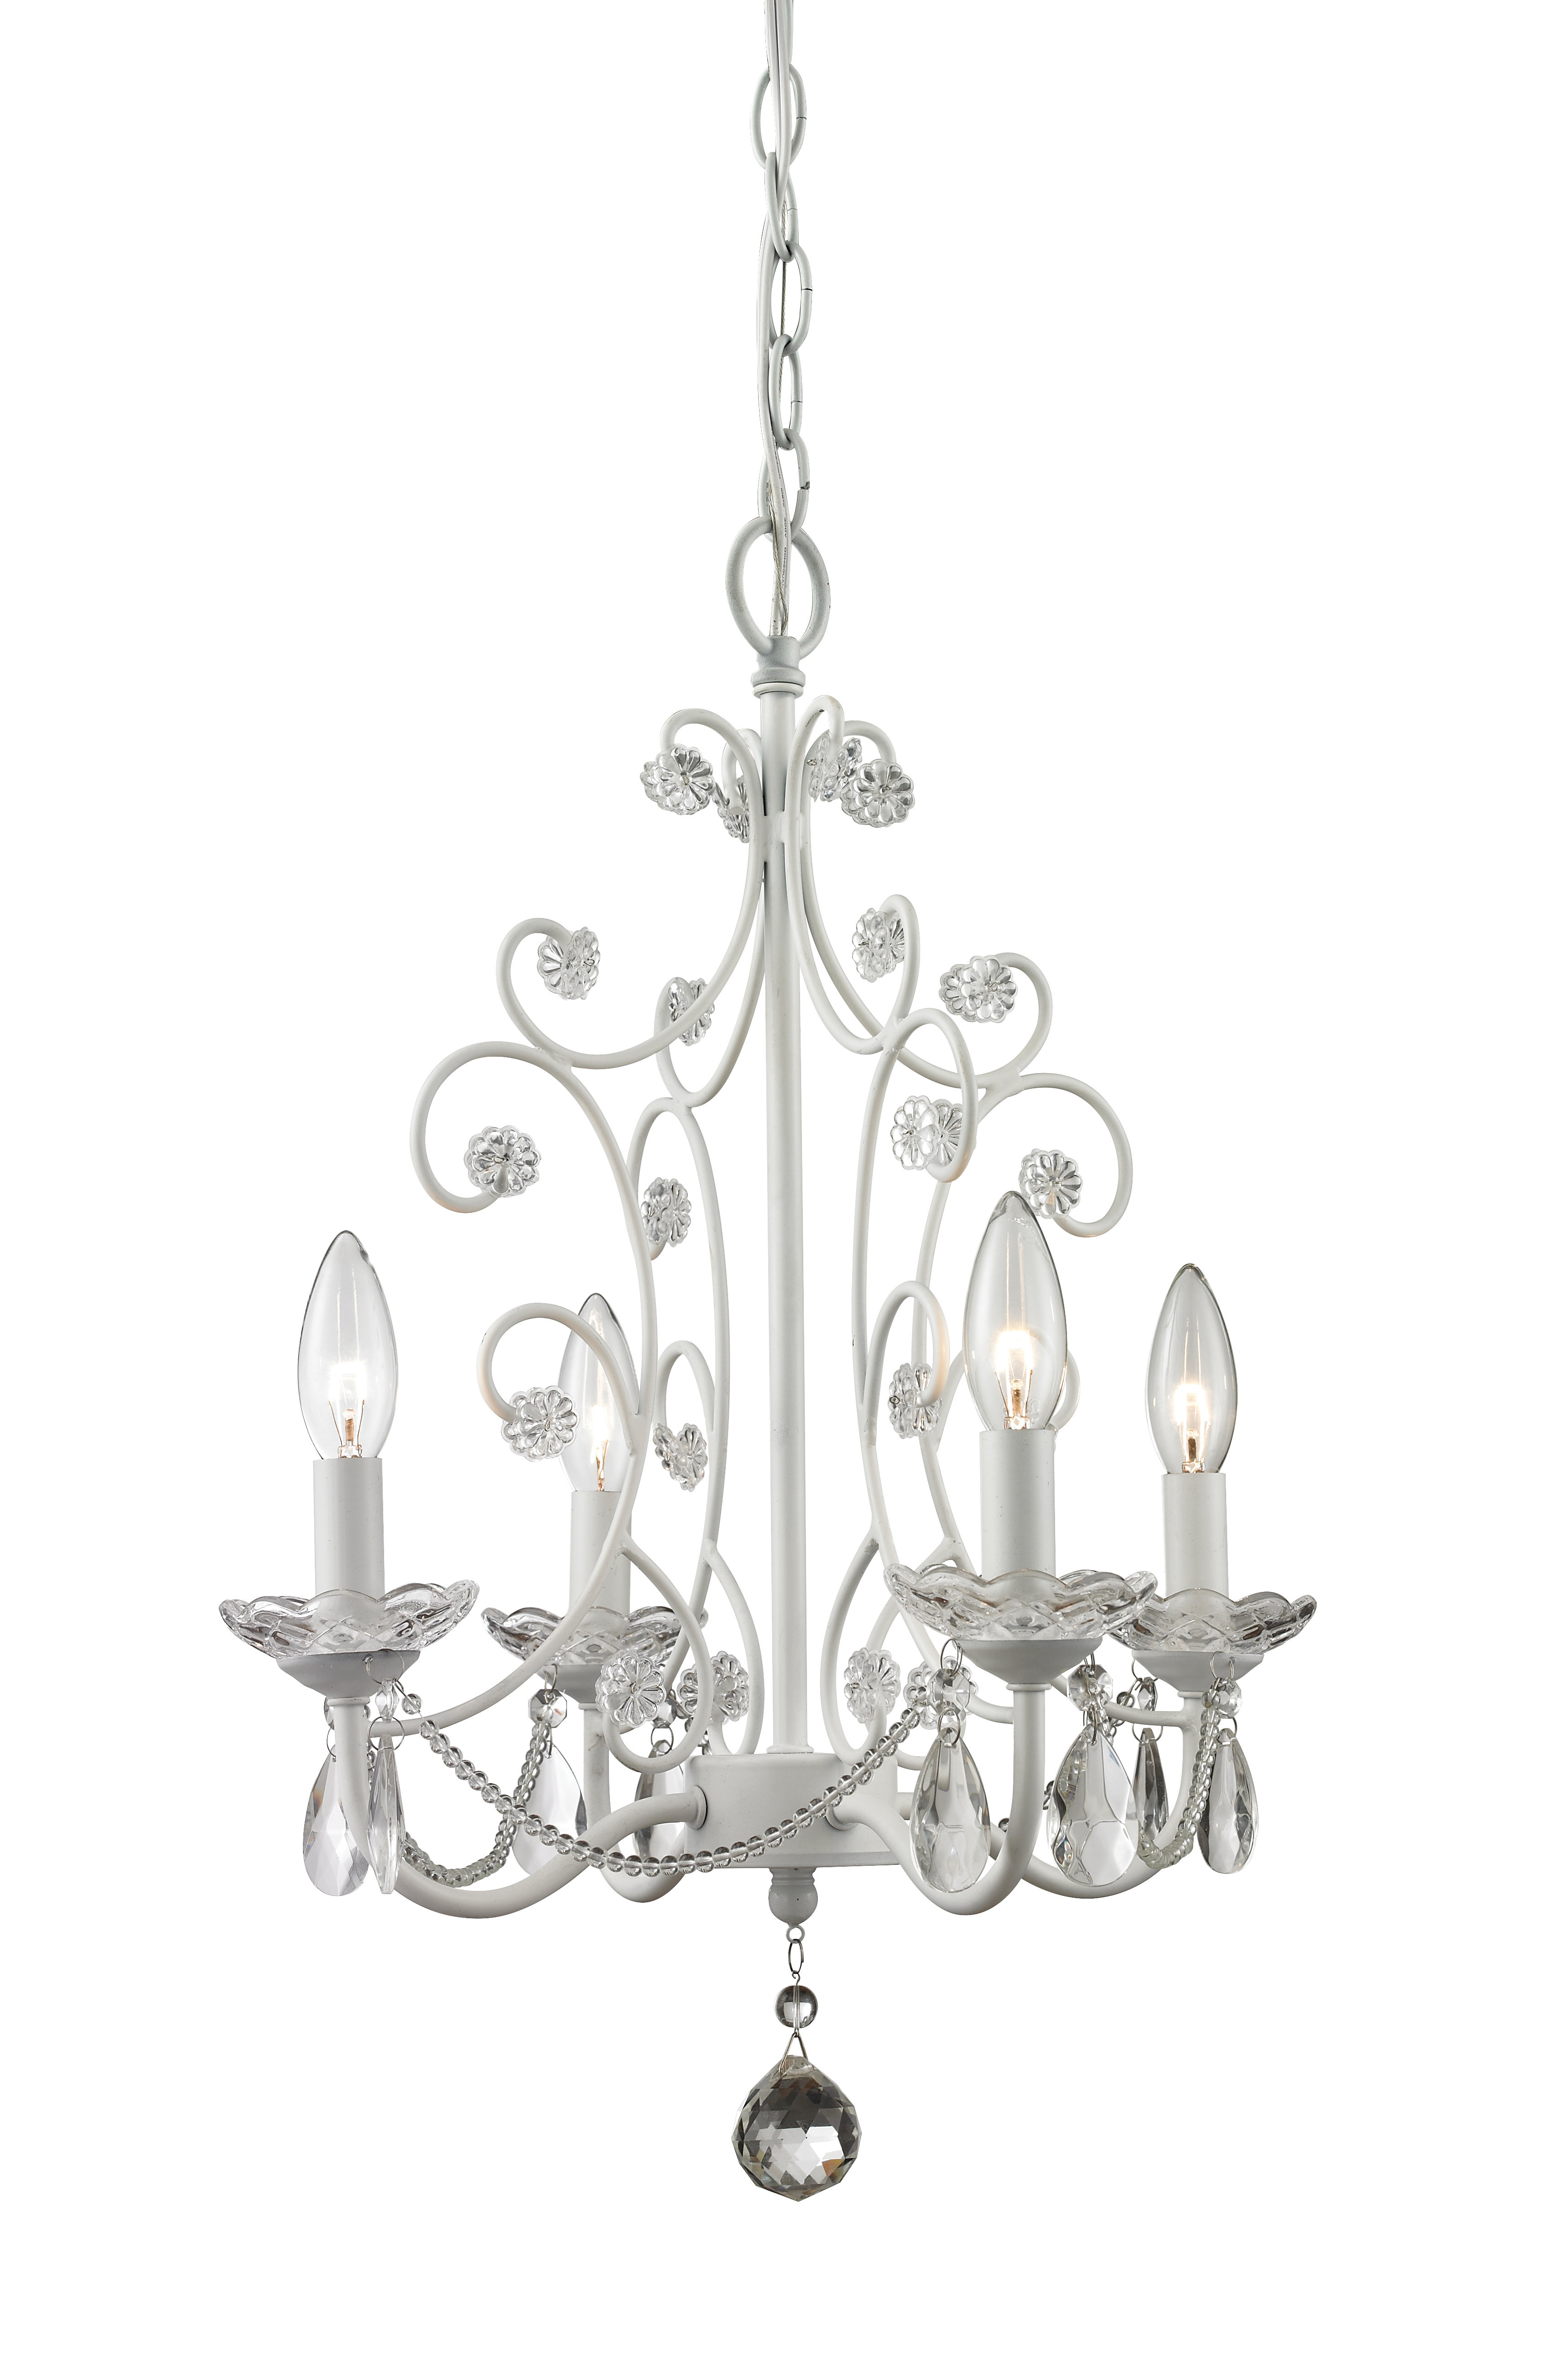 Aquilla 4 Light Candle Style Chandelier With Regard To Aldora 4 Light Candle Style Chandeliers (View 8 of 30)